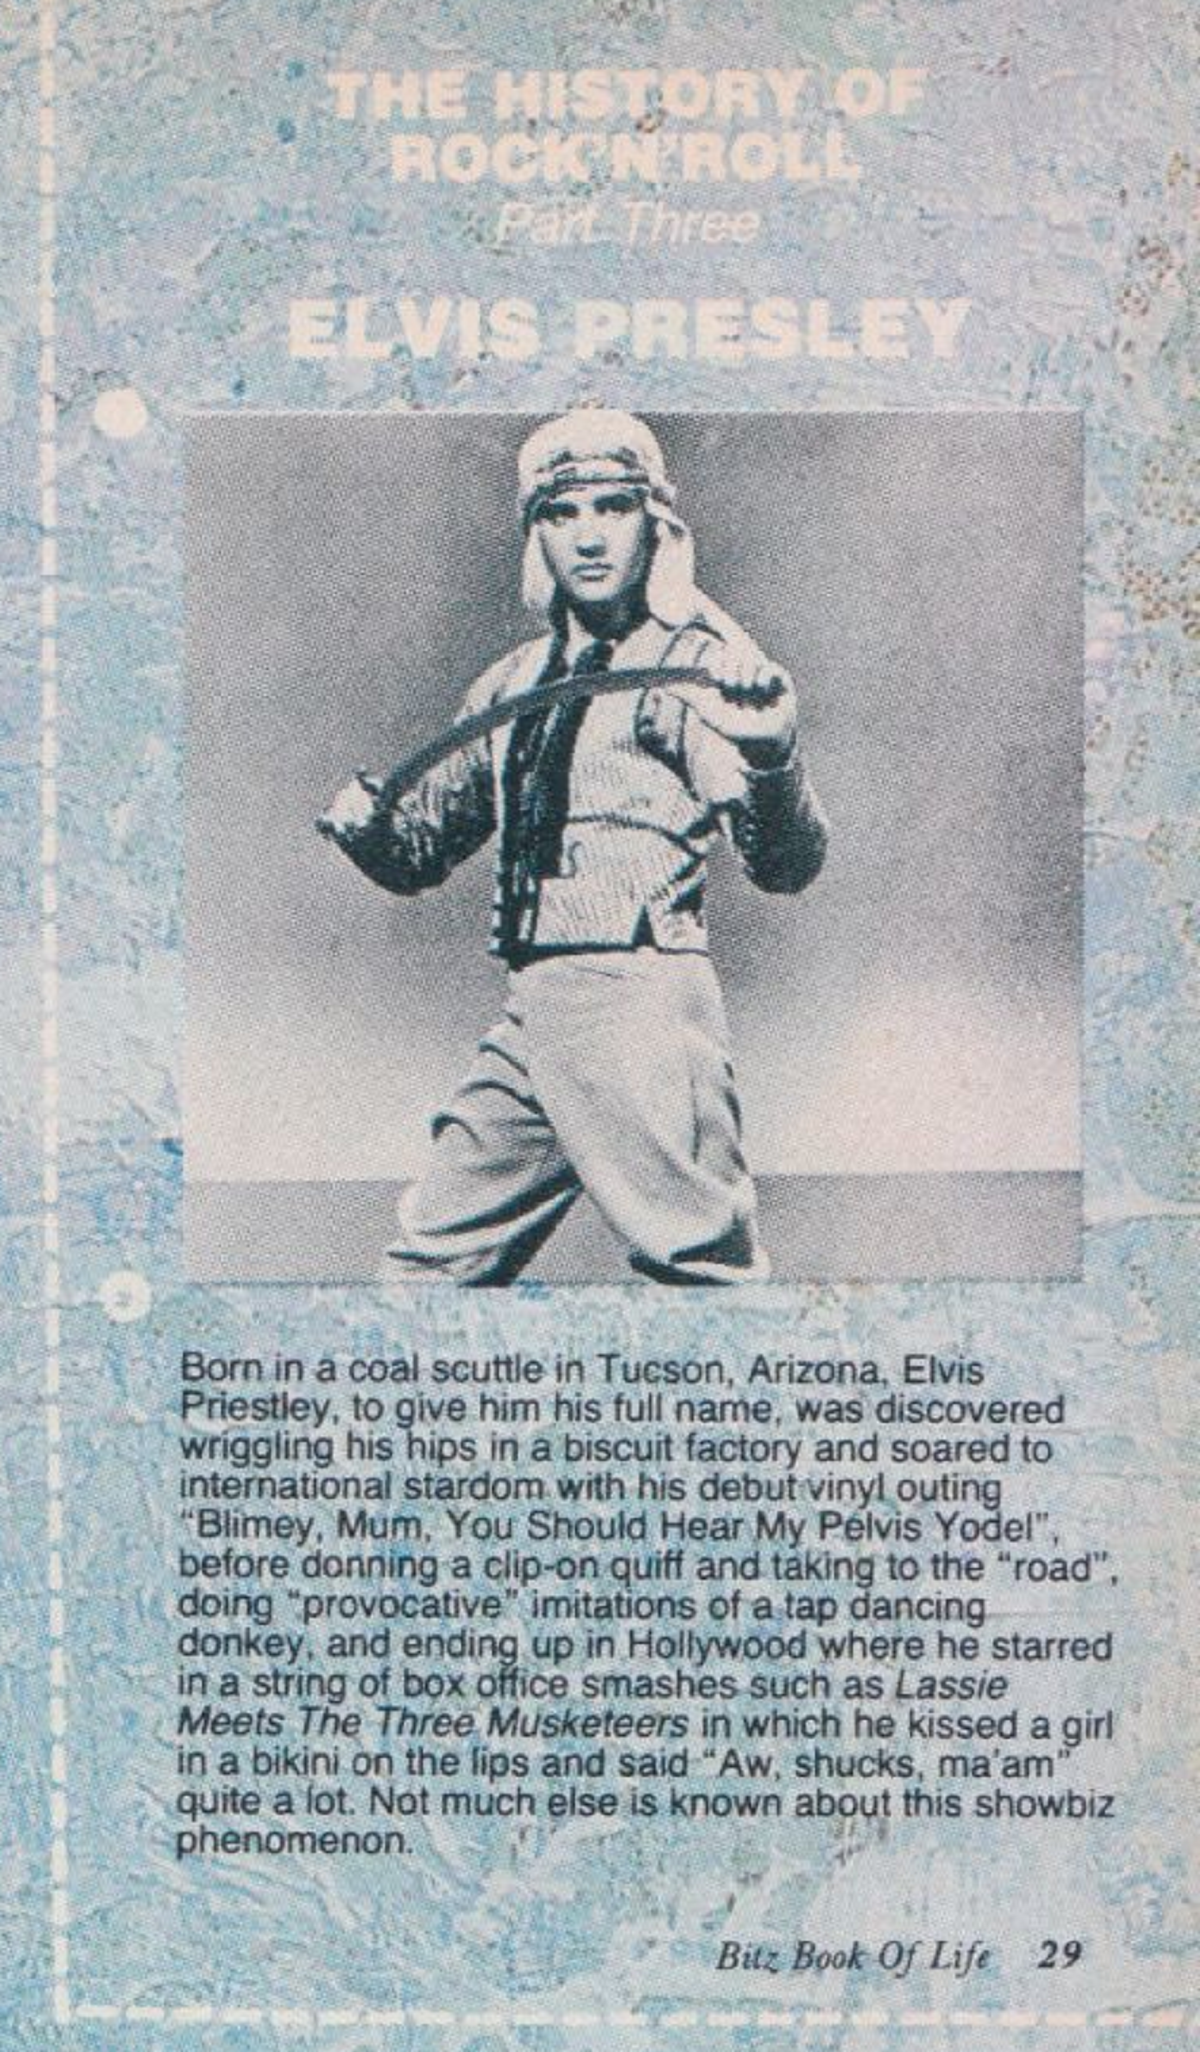 The History Of Rock'N'Roll Part Three: Elvis Presley from Smash Hits (1986).